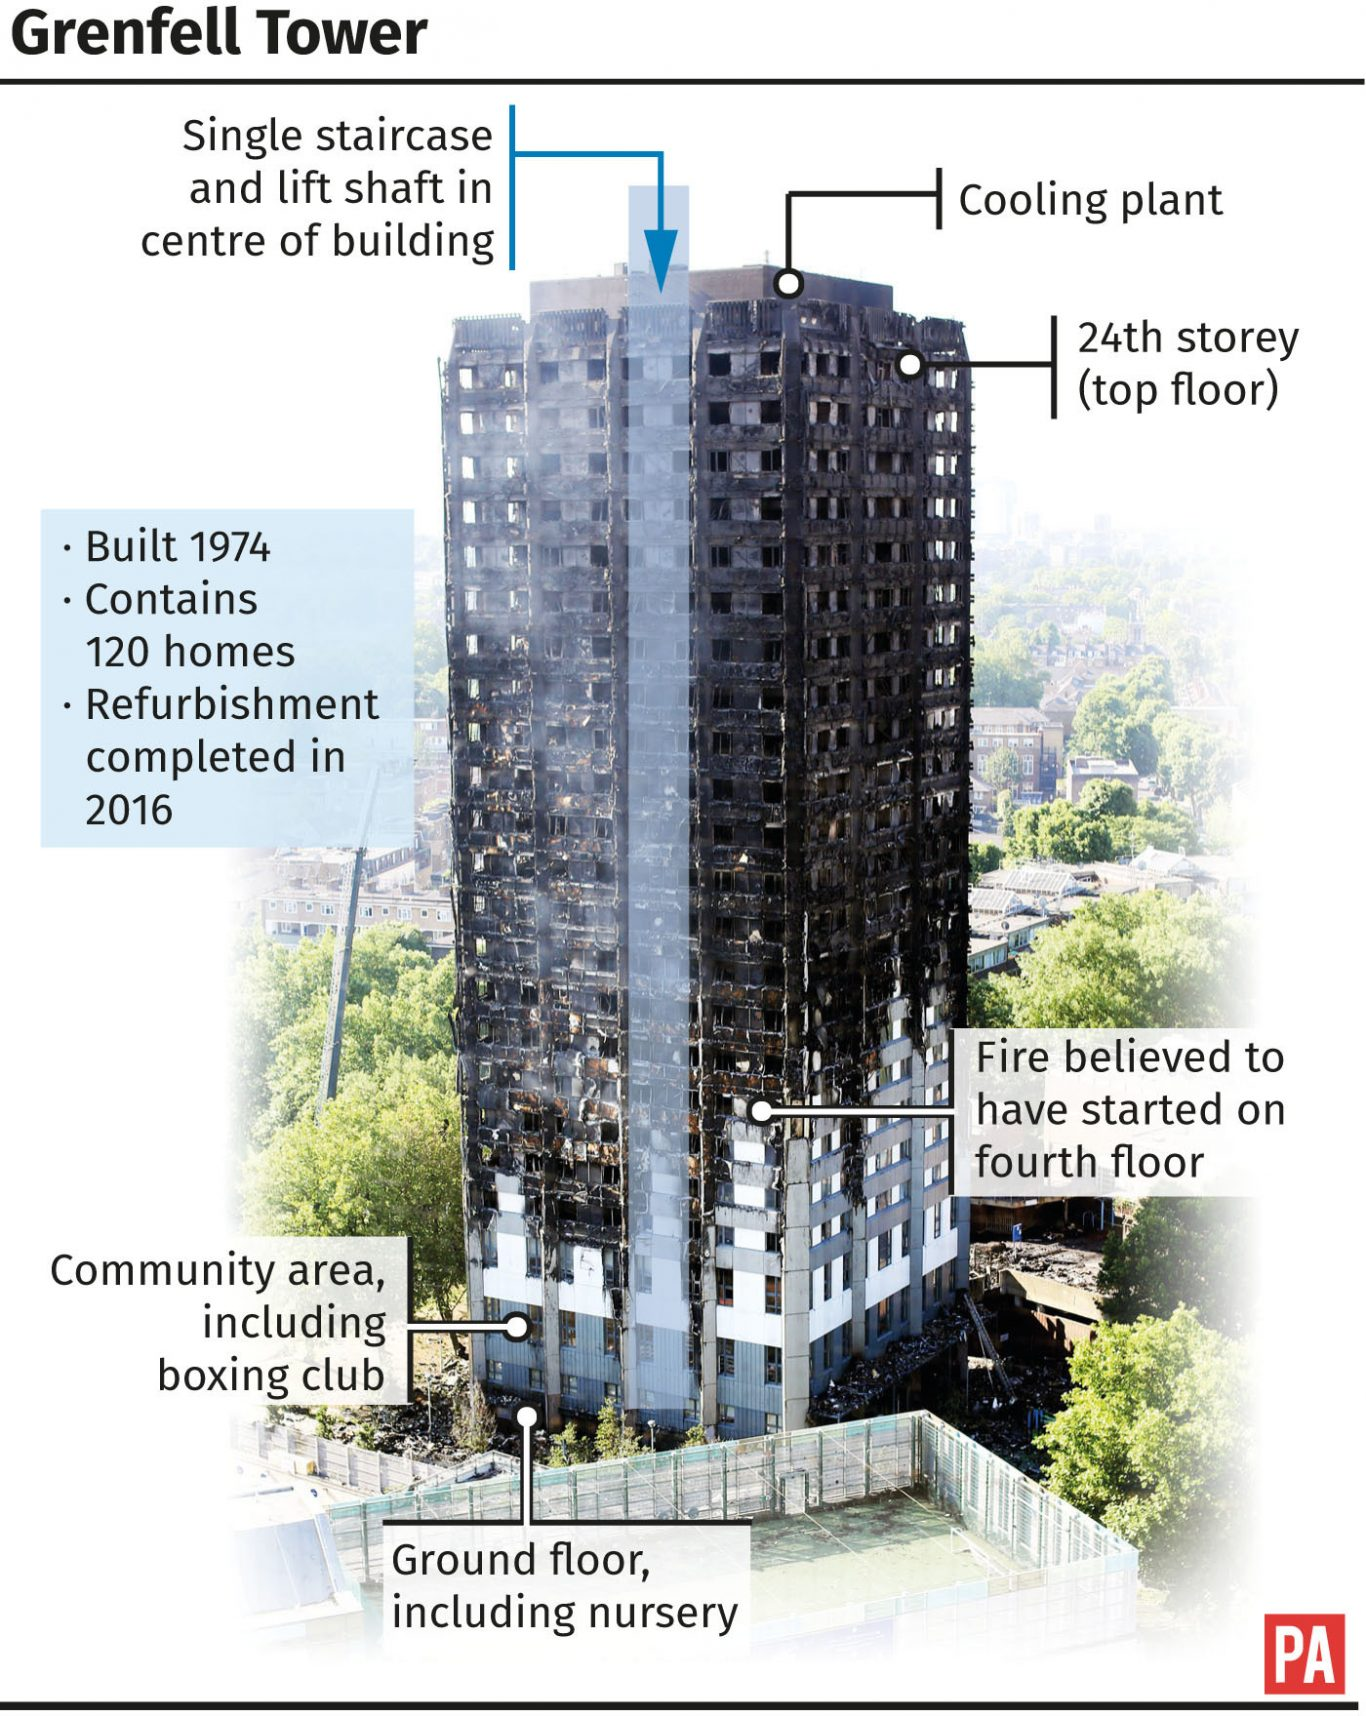 Fears, frustrations grow as death toll in London building fire rises